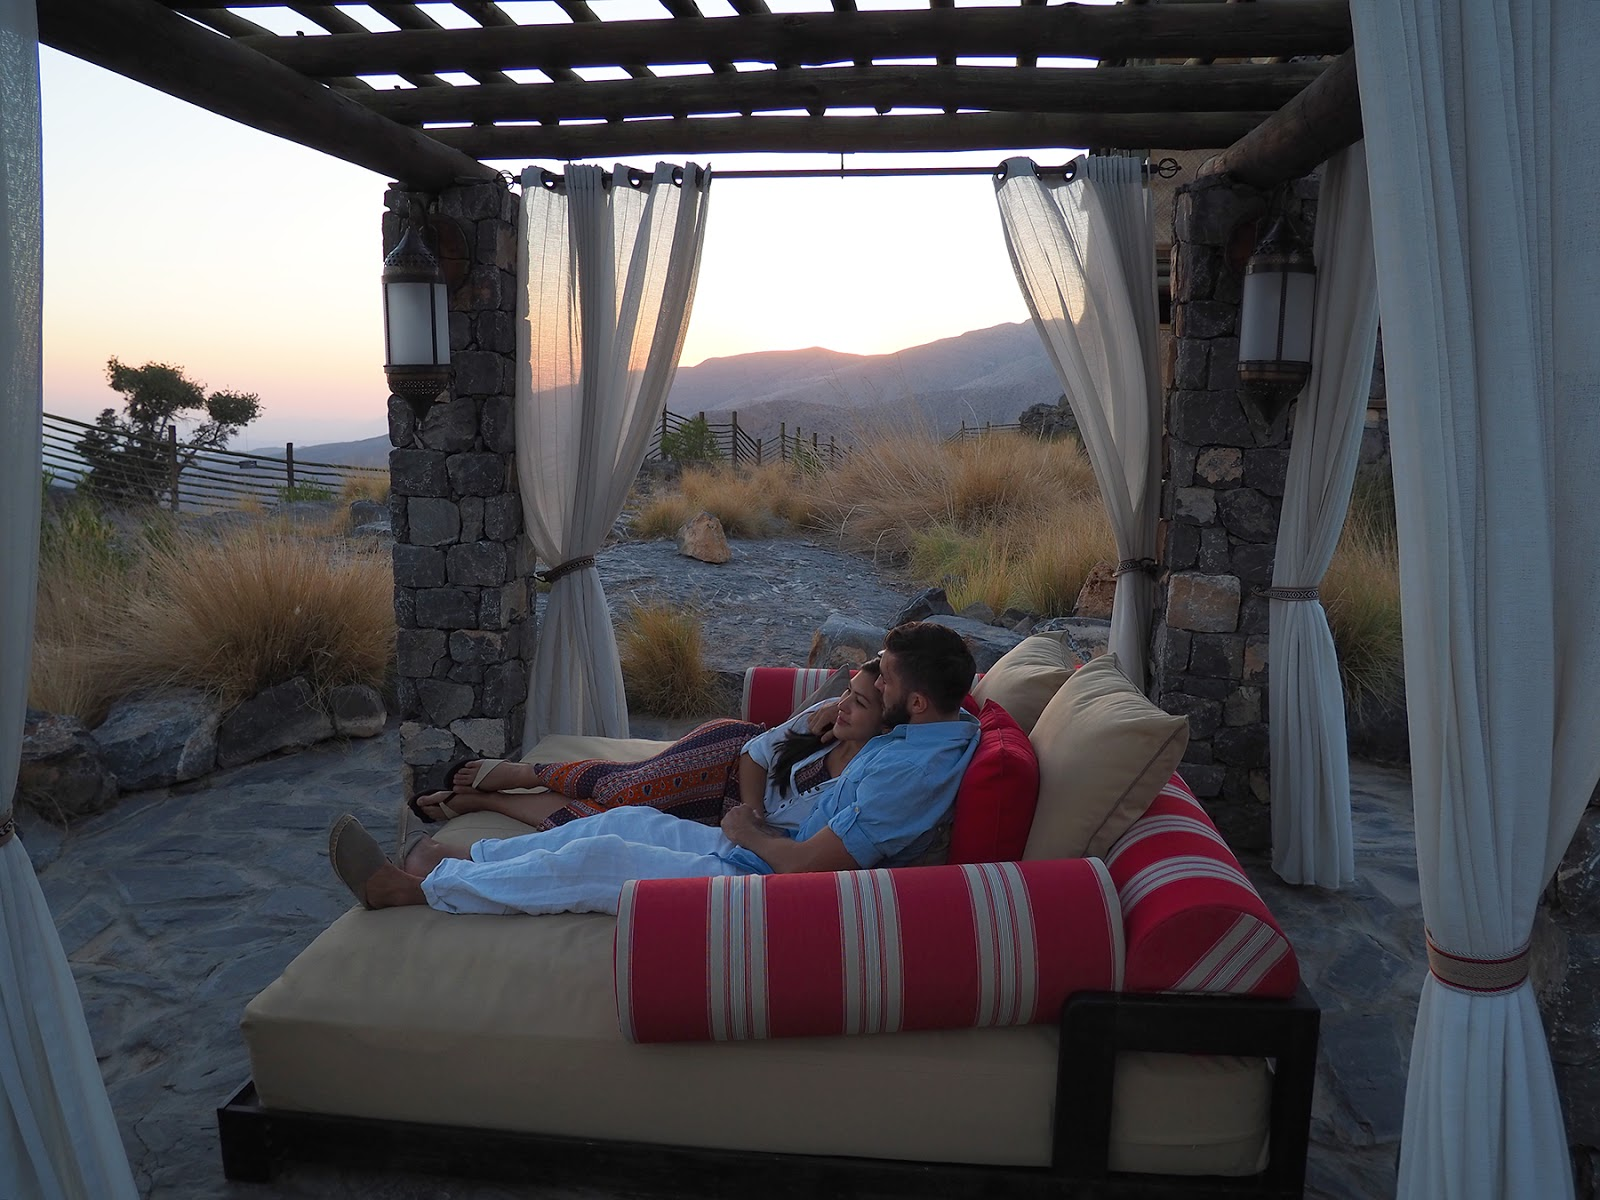 Euriental | luxury travel & style | Alila Jabal Akhdar, Oman